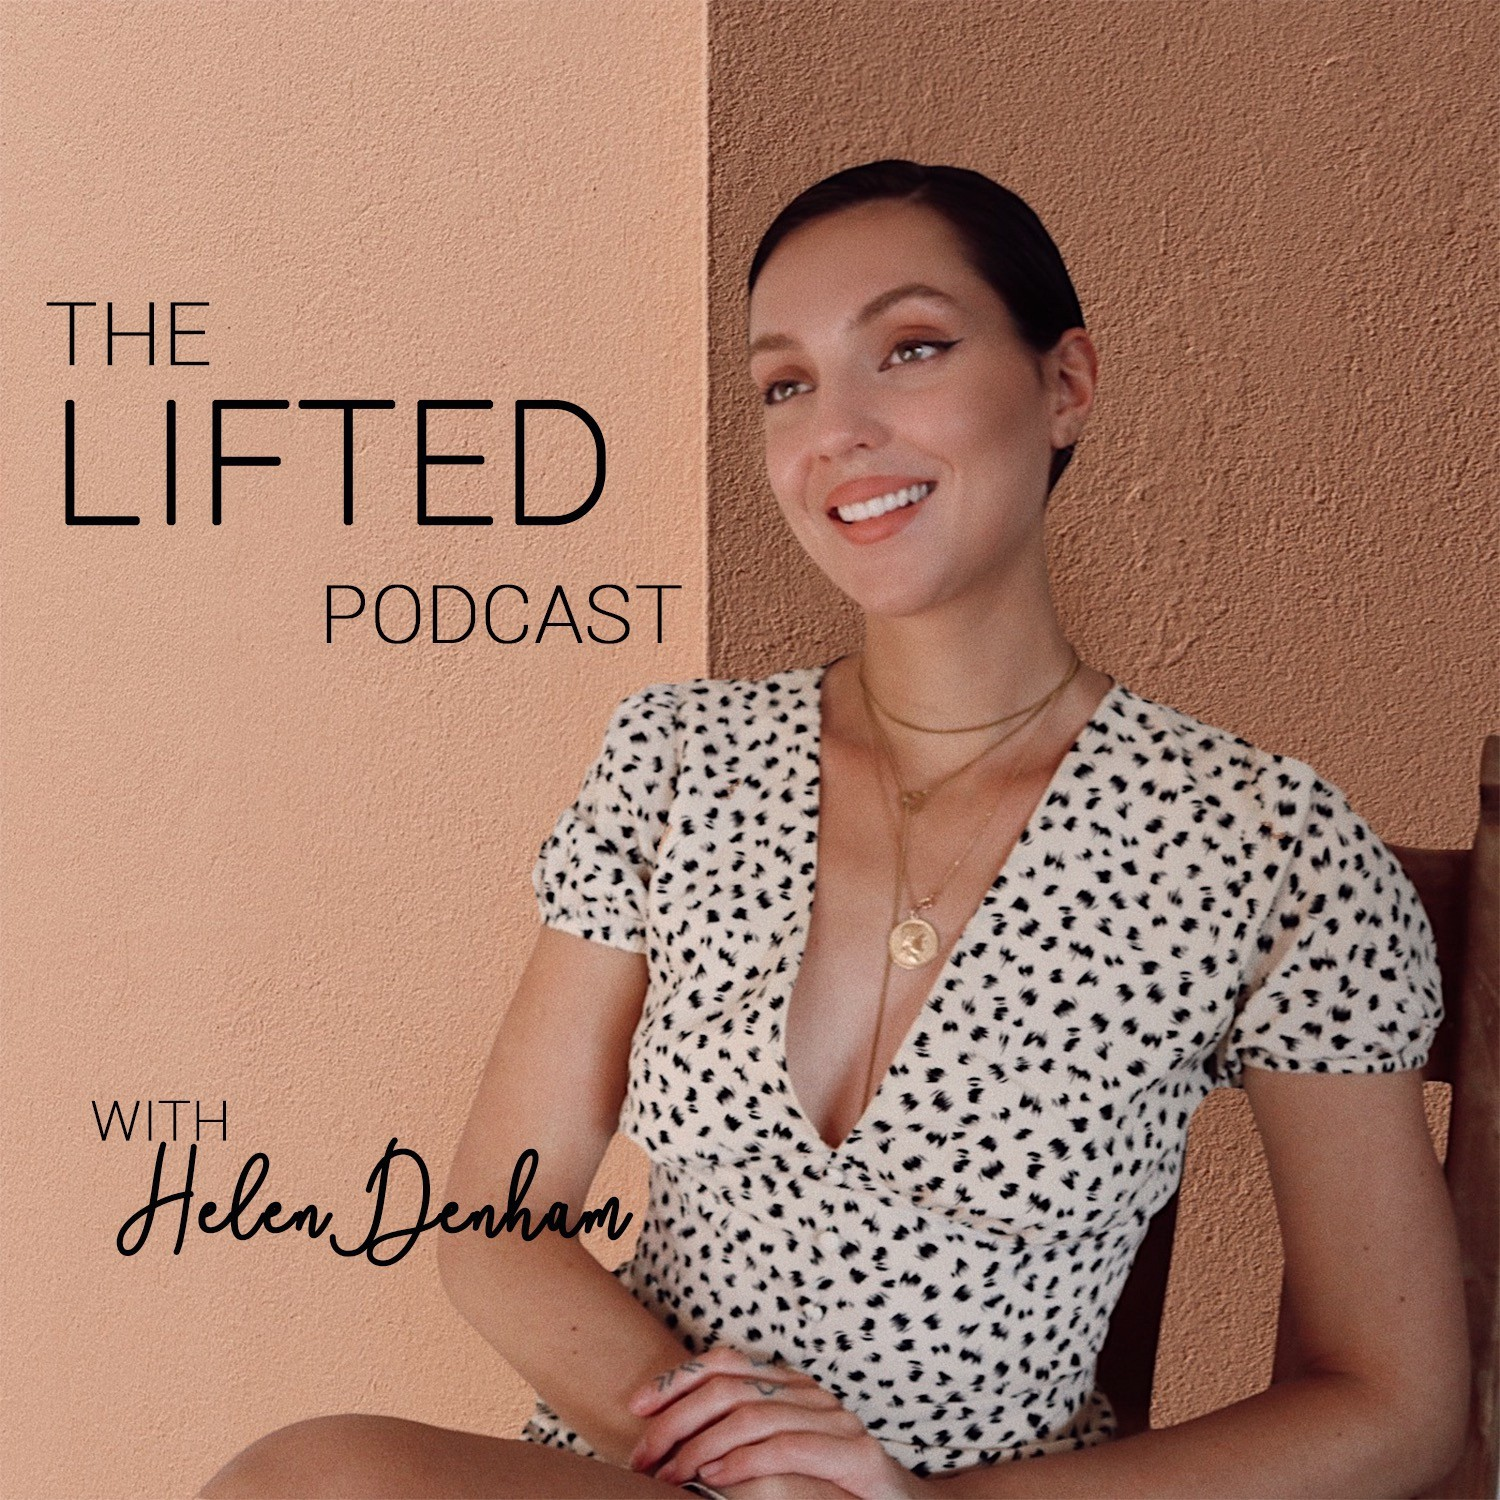 The Lifted Podcast